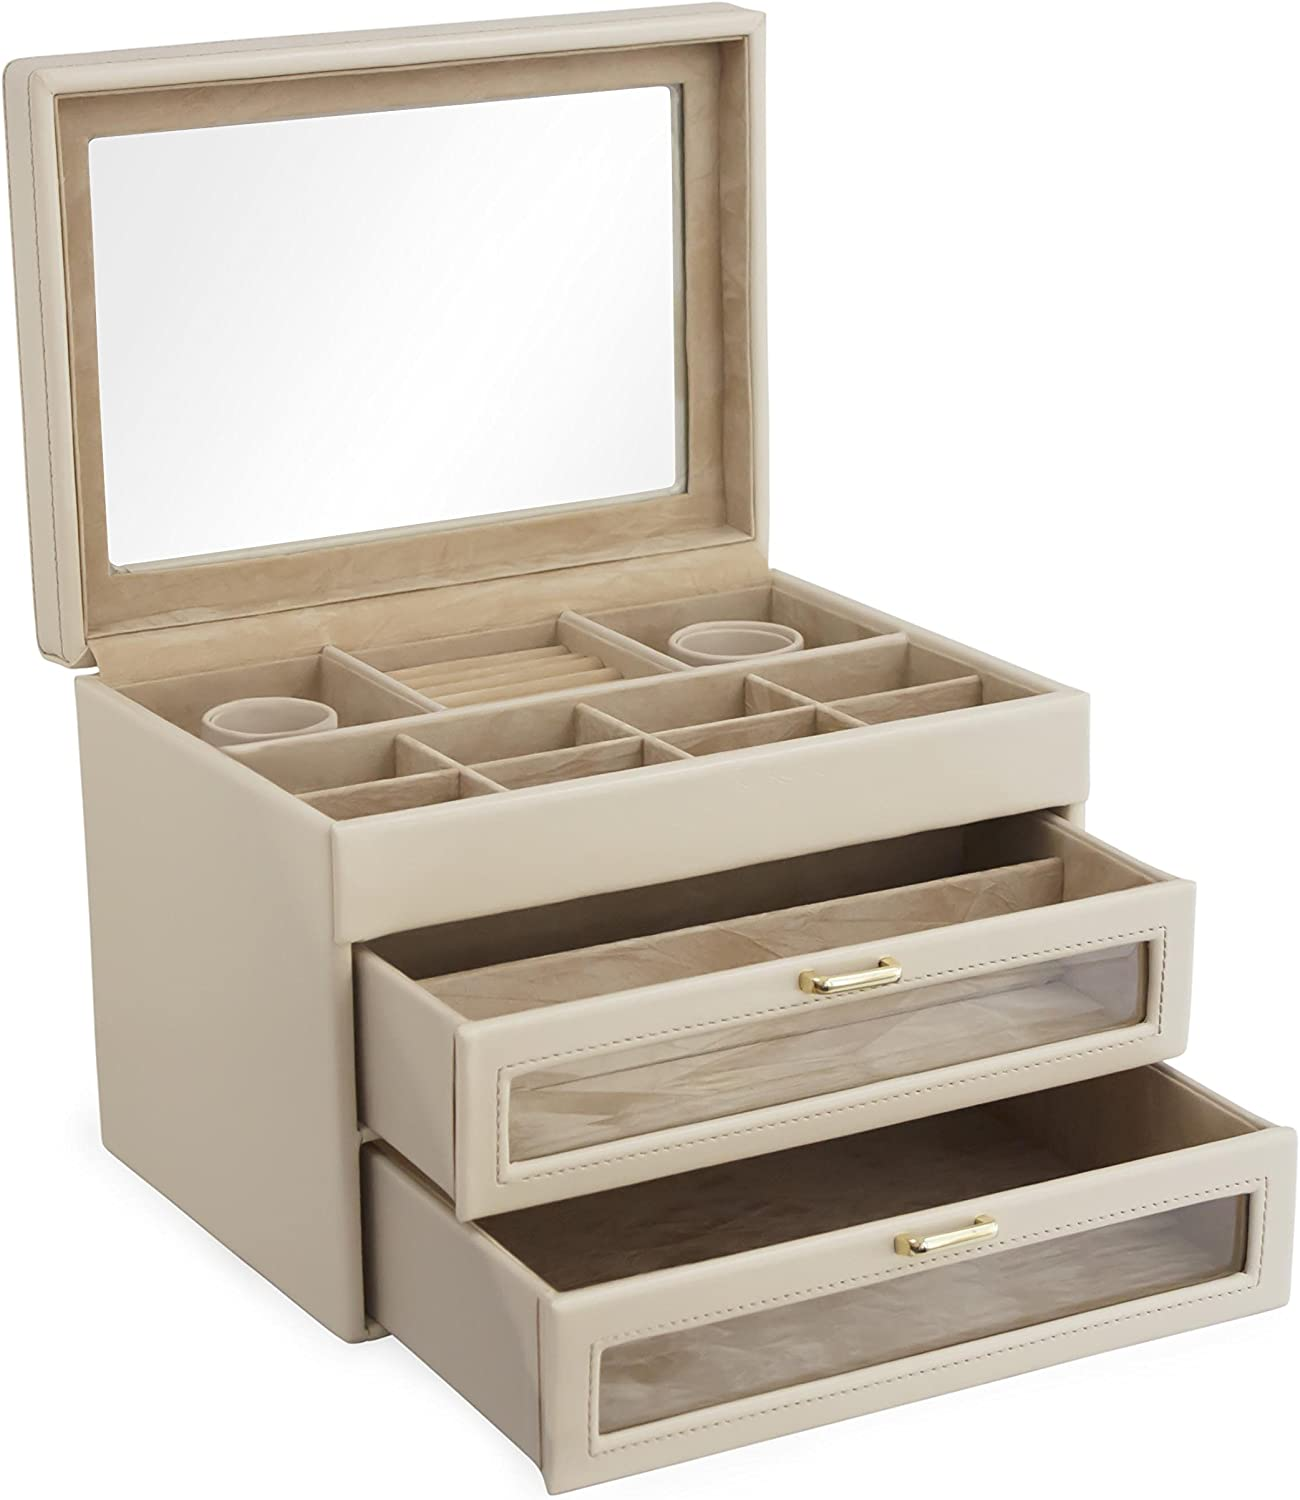 Cordays - Large Jewellery Box Handcrafted in Premium Quality with Glass Lid and 2 Drawers- Almond CDL-10022